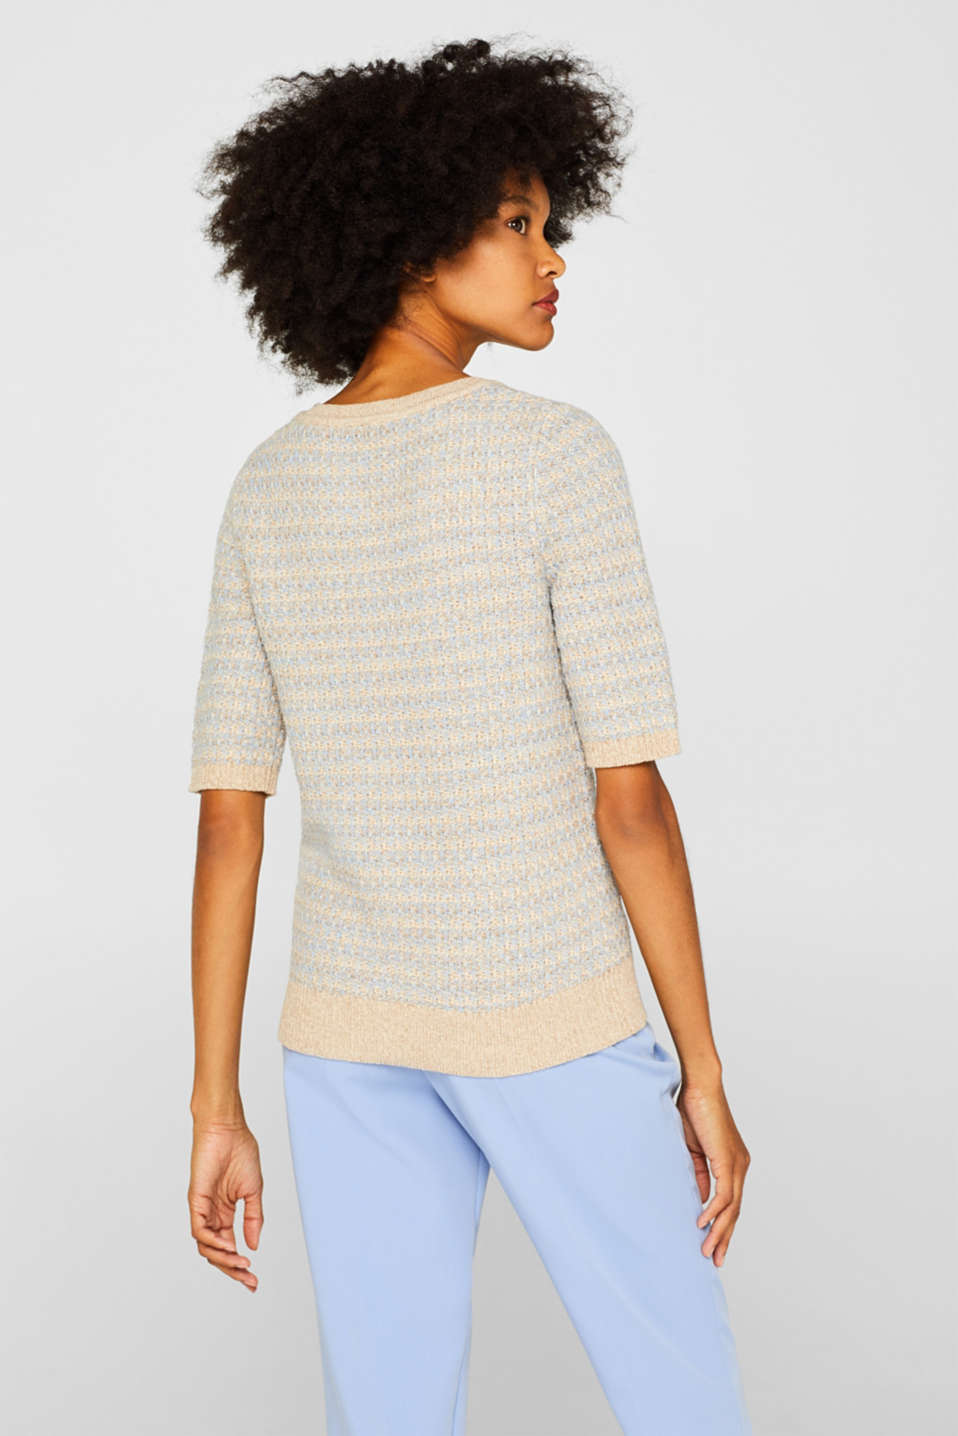 Short-sleeved jumper with a two-tone texture, CREAM BEIGE 2, detail image number 3